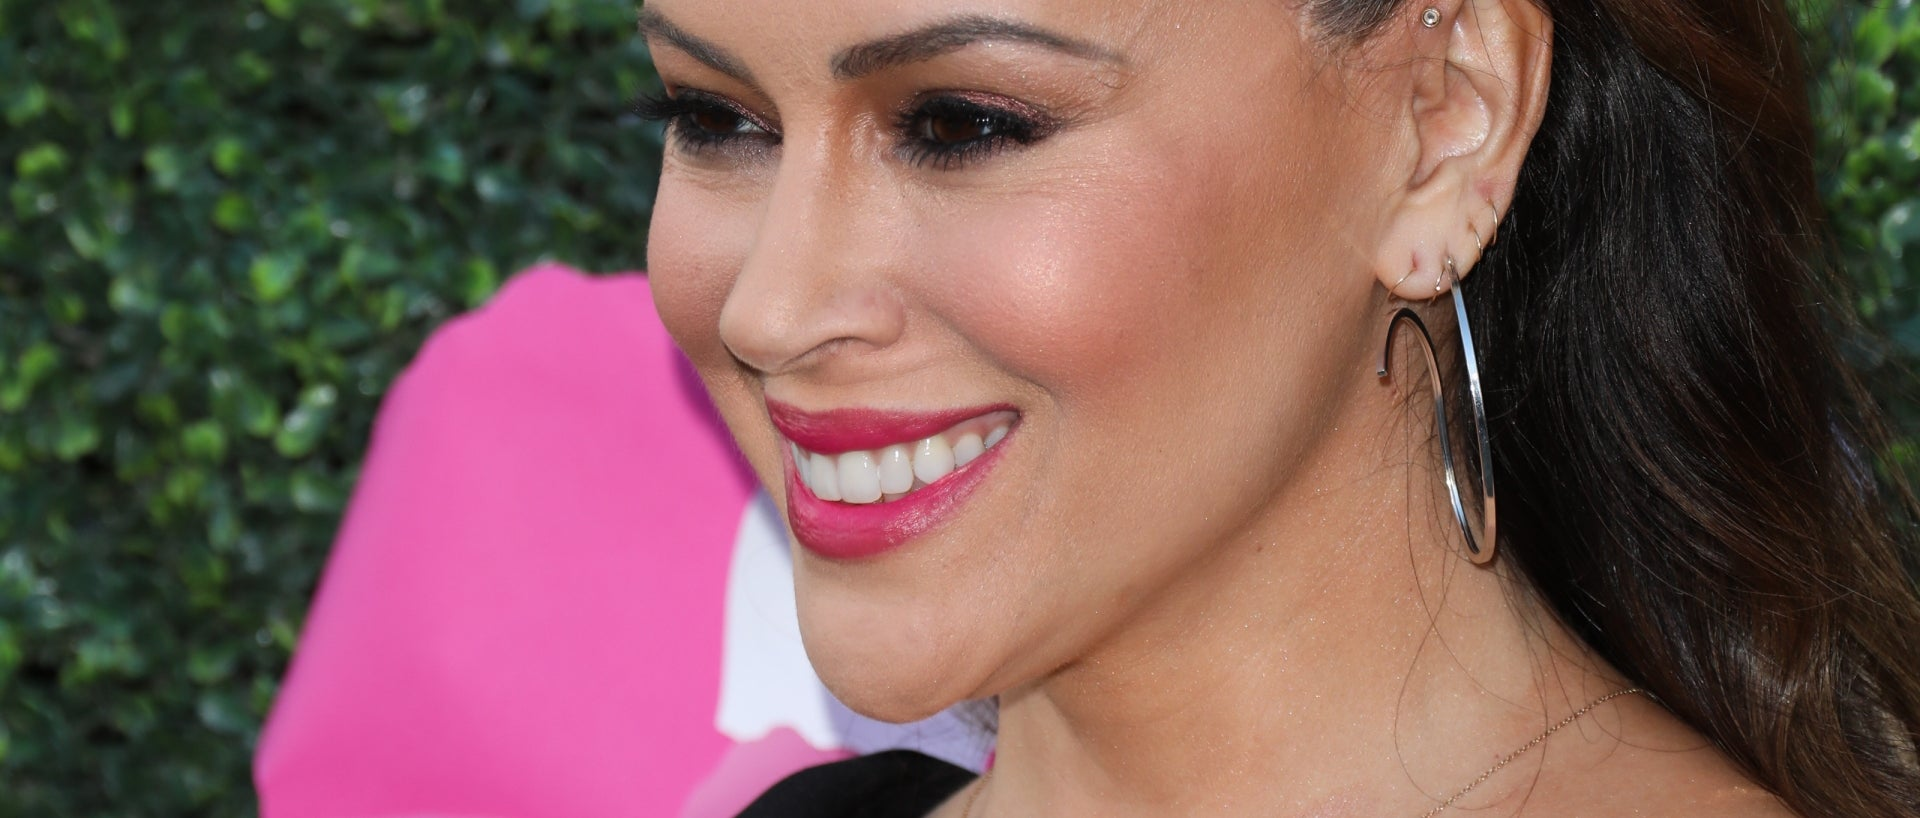 Alyssa Milano pictured with high pony, in black dress, smiling